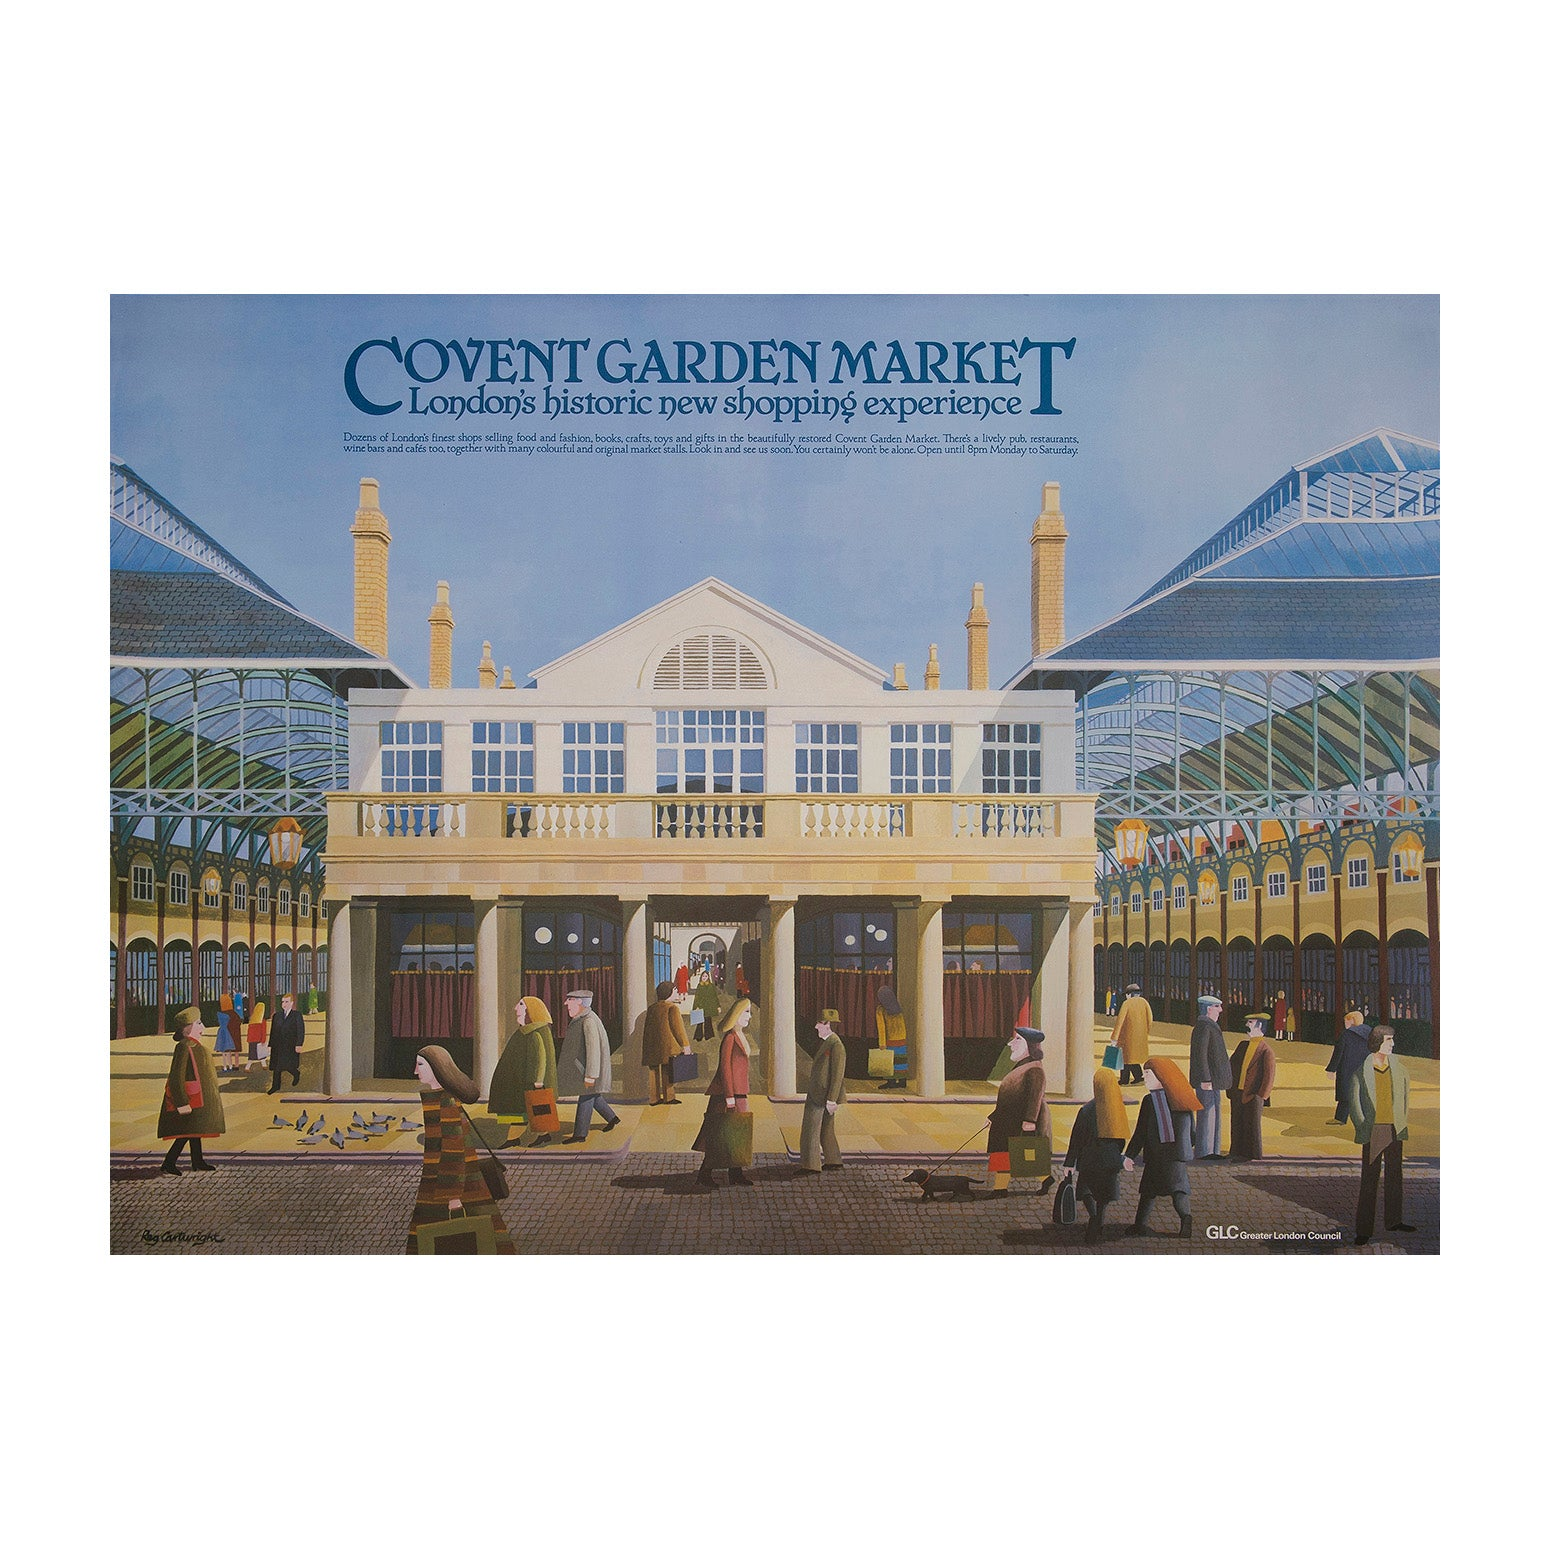 Covent Garden Market London's historic new shopping experience